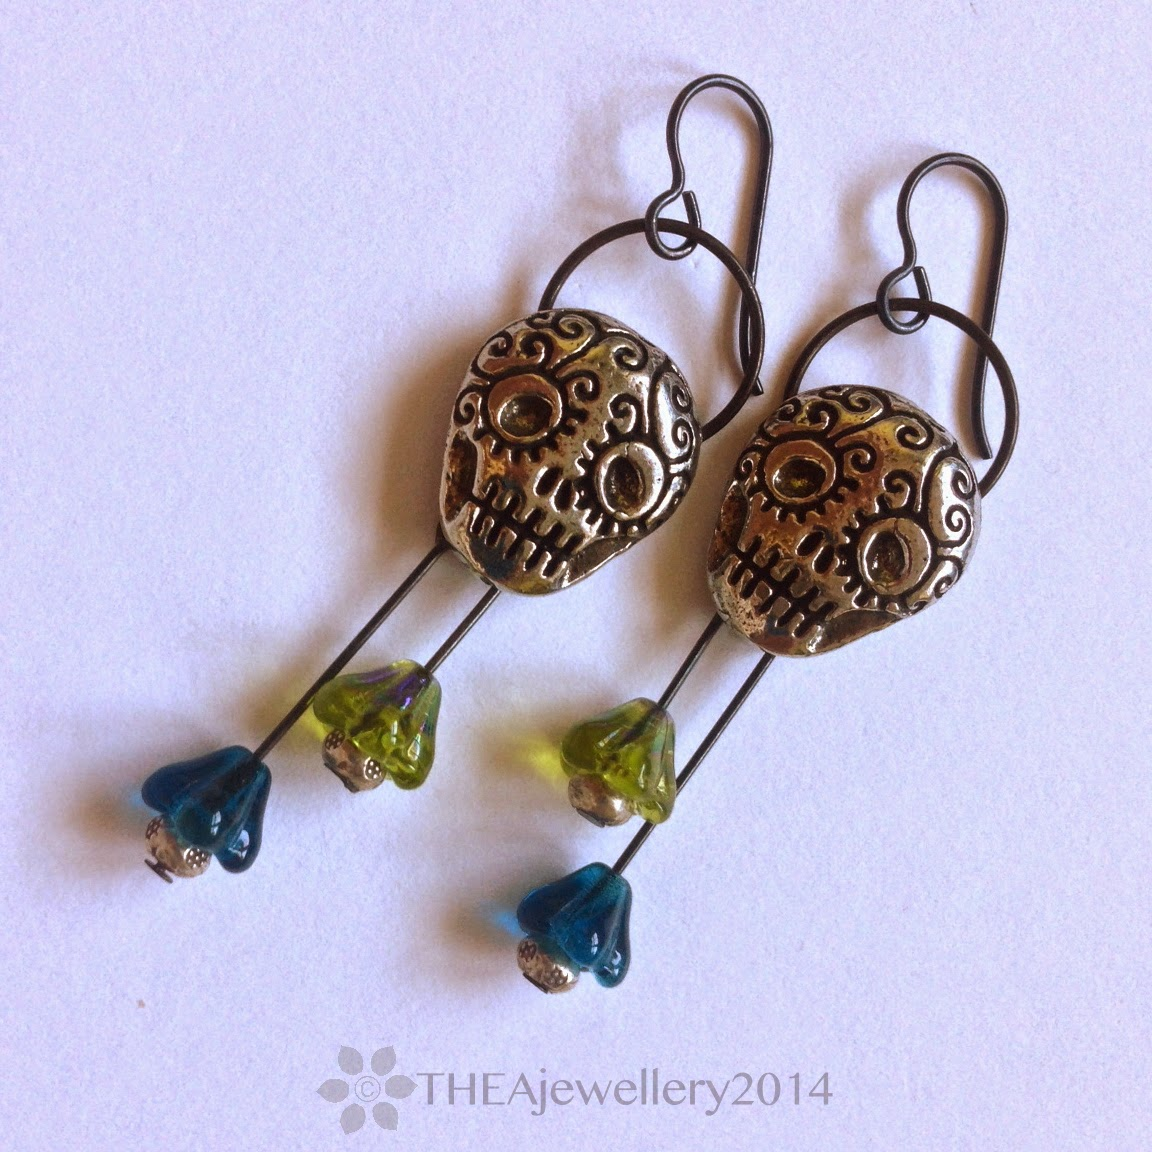 Art jewelry elements shank button earrings a quick how to for Buttons with shanks for jewelry